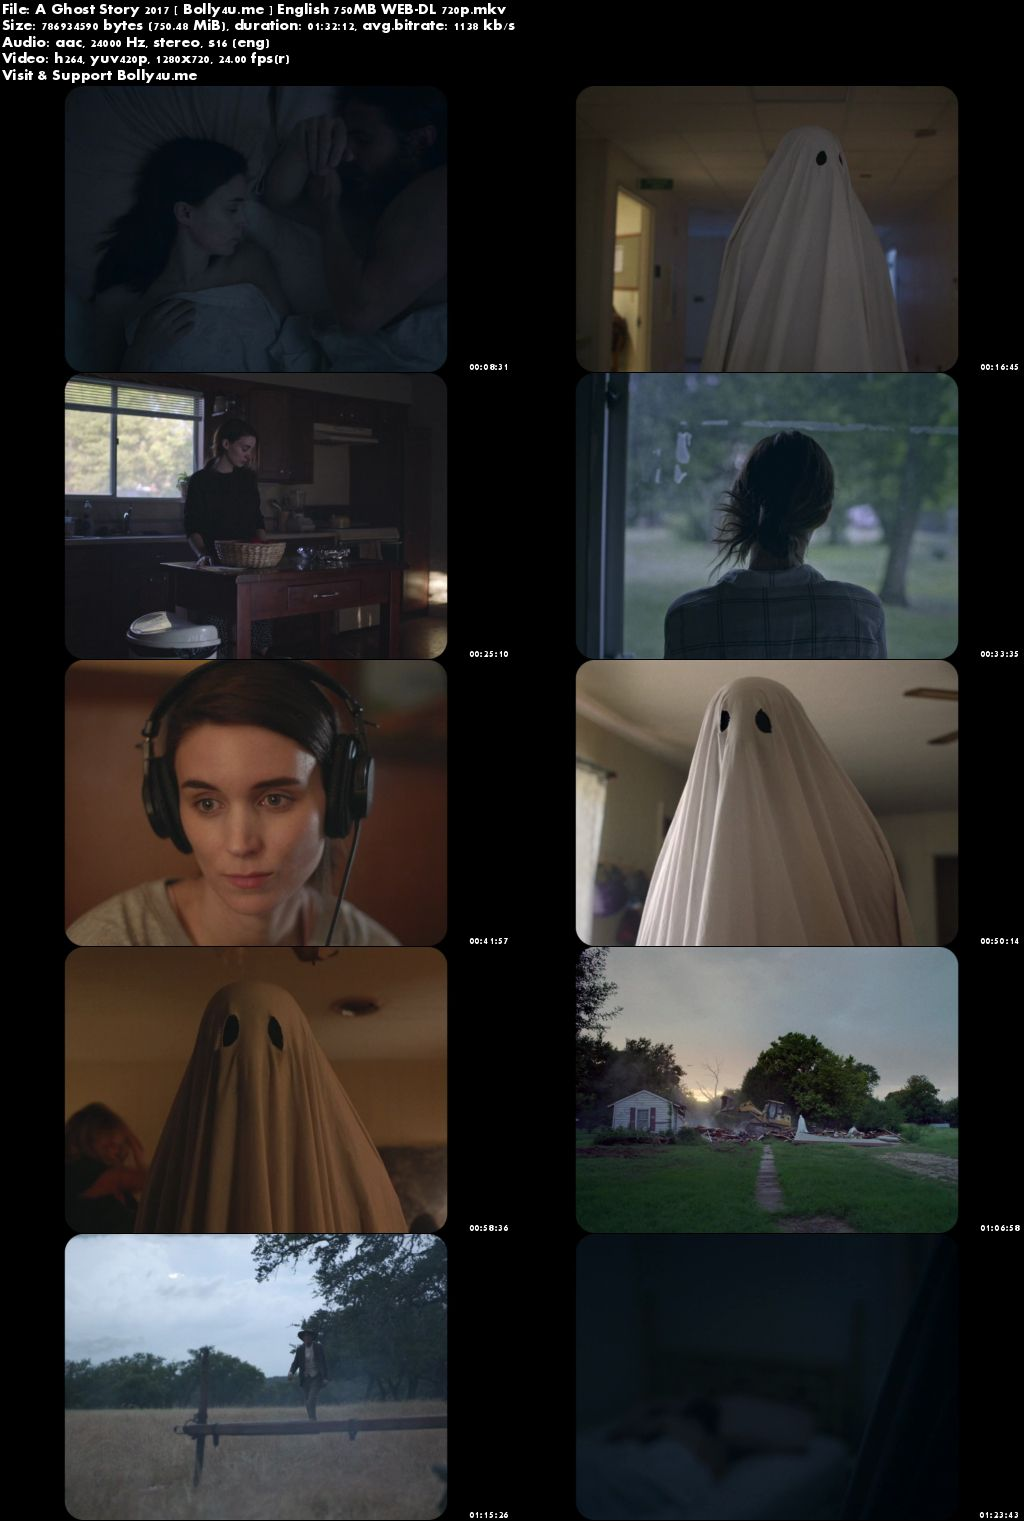 A Ghost Story 2017 WEB-DL 280Mb English Movie 480p Download